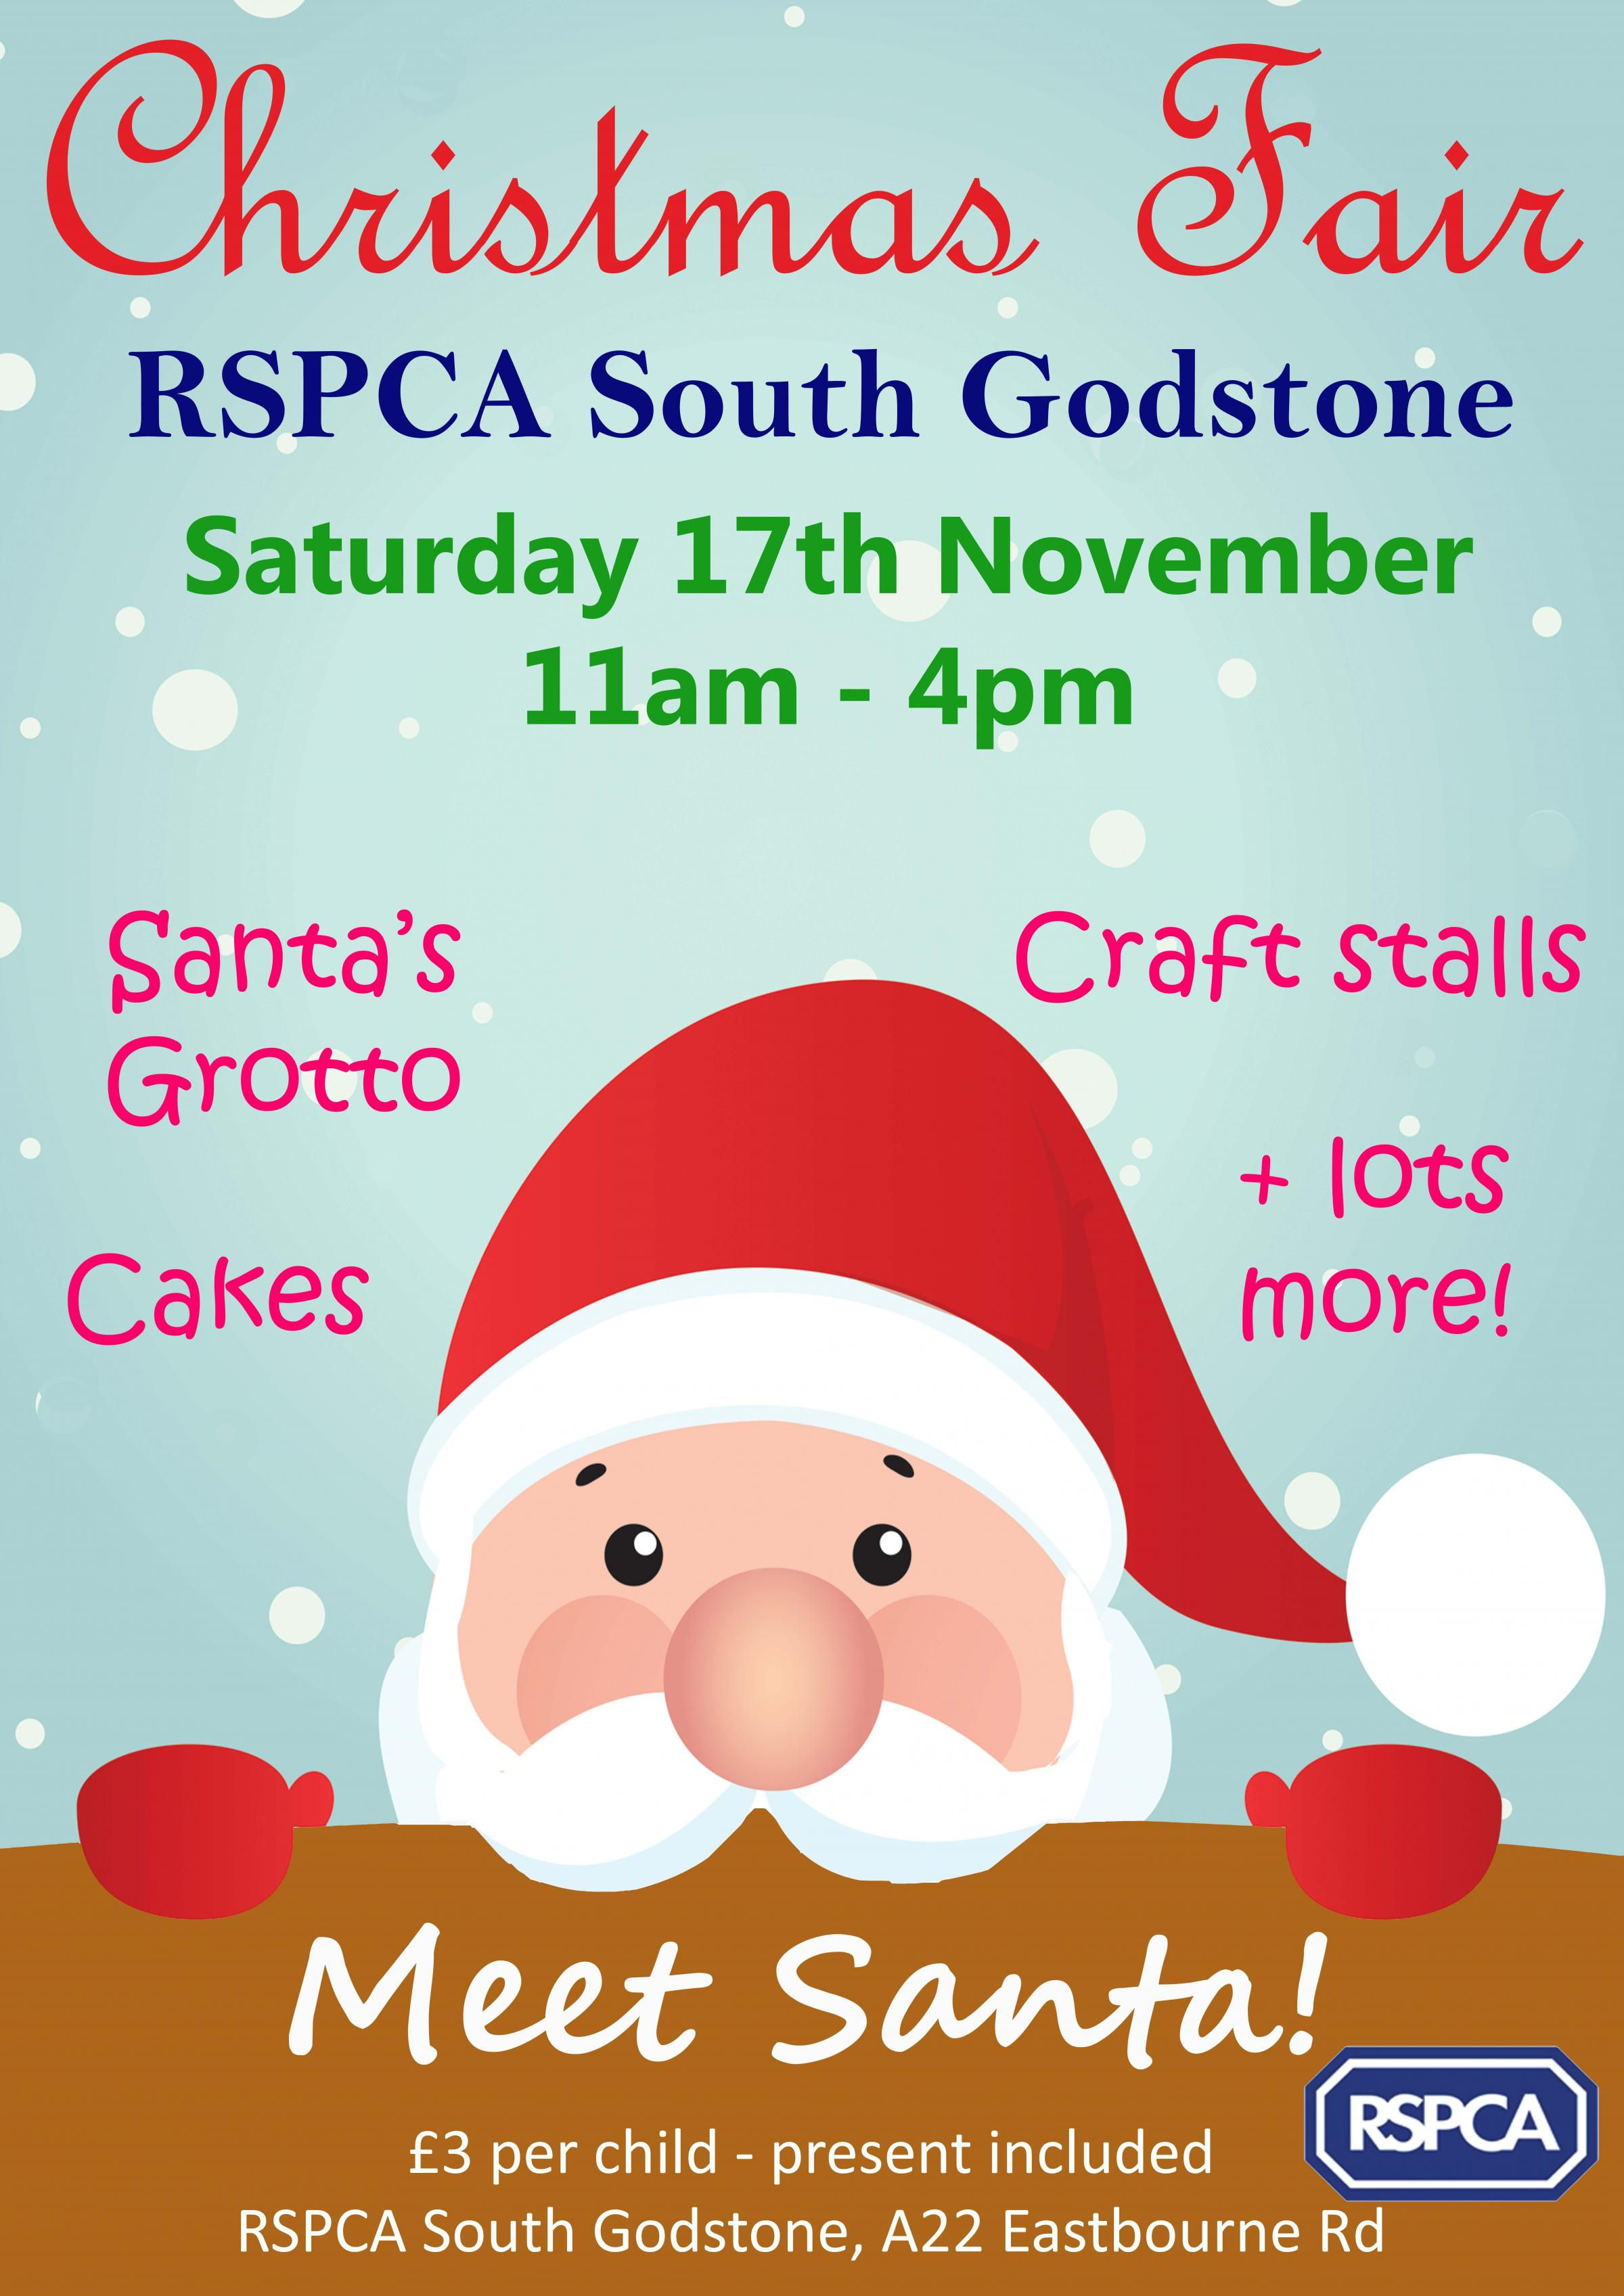 RSPCA South Godstone Christmas Fair